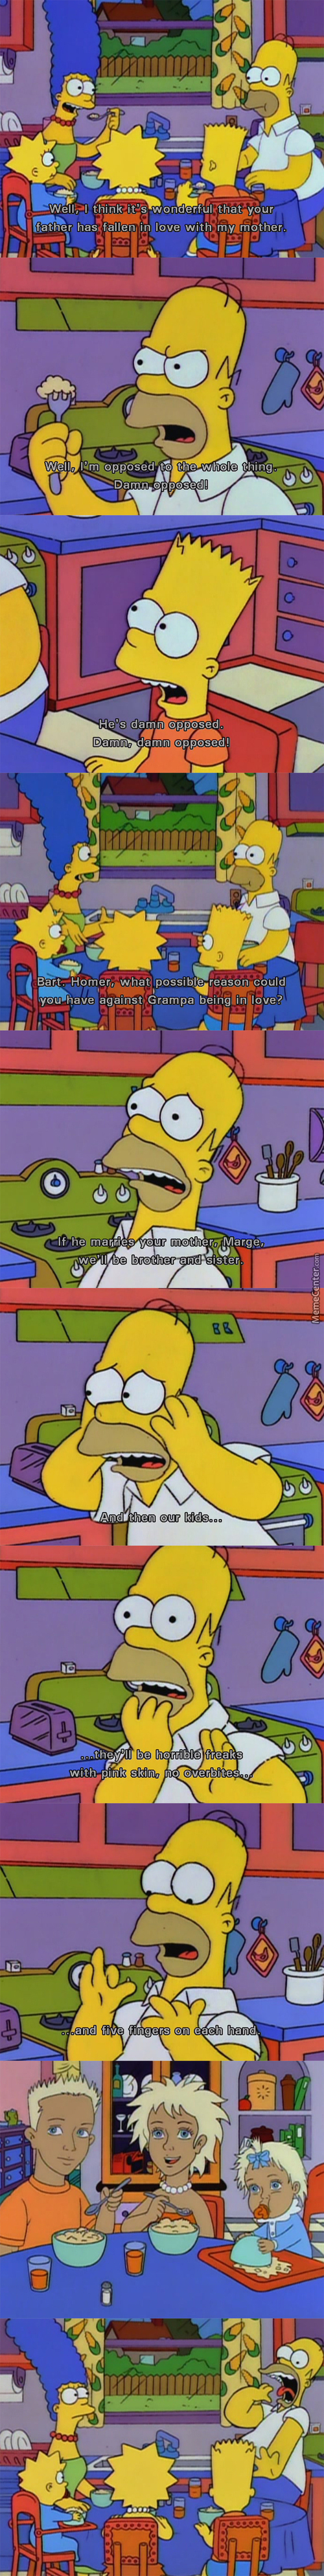 Oh No! Pink Skin, 5 Fingers! Ew! (Simpson)